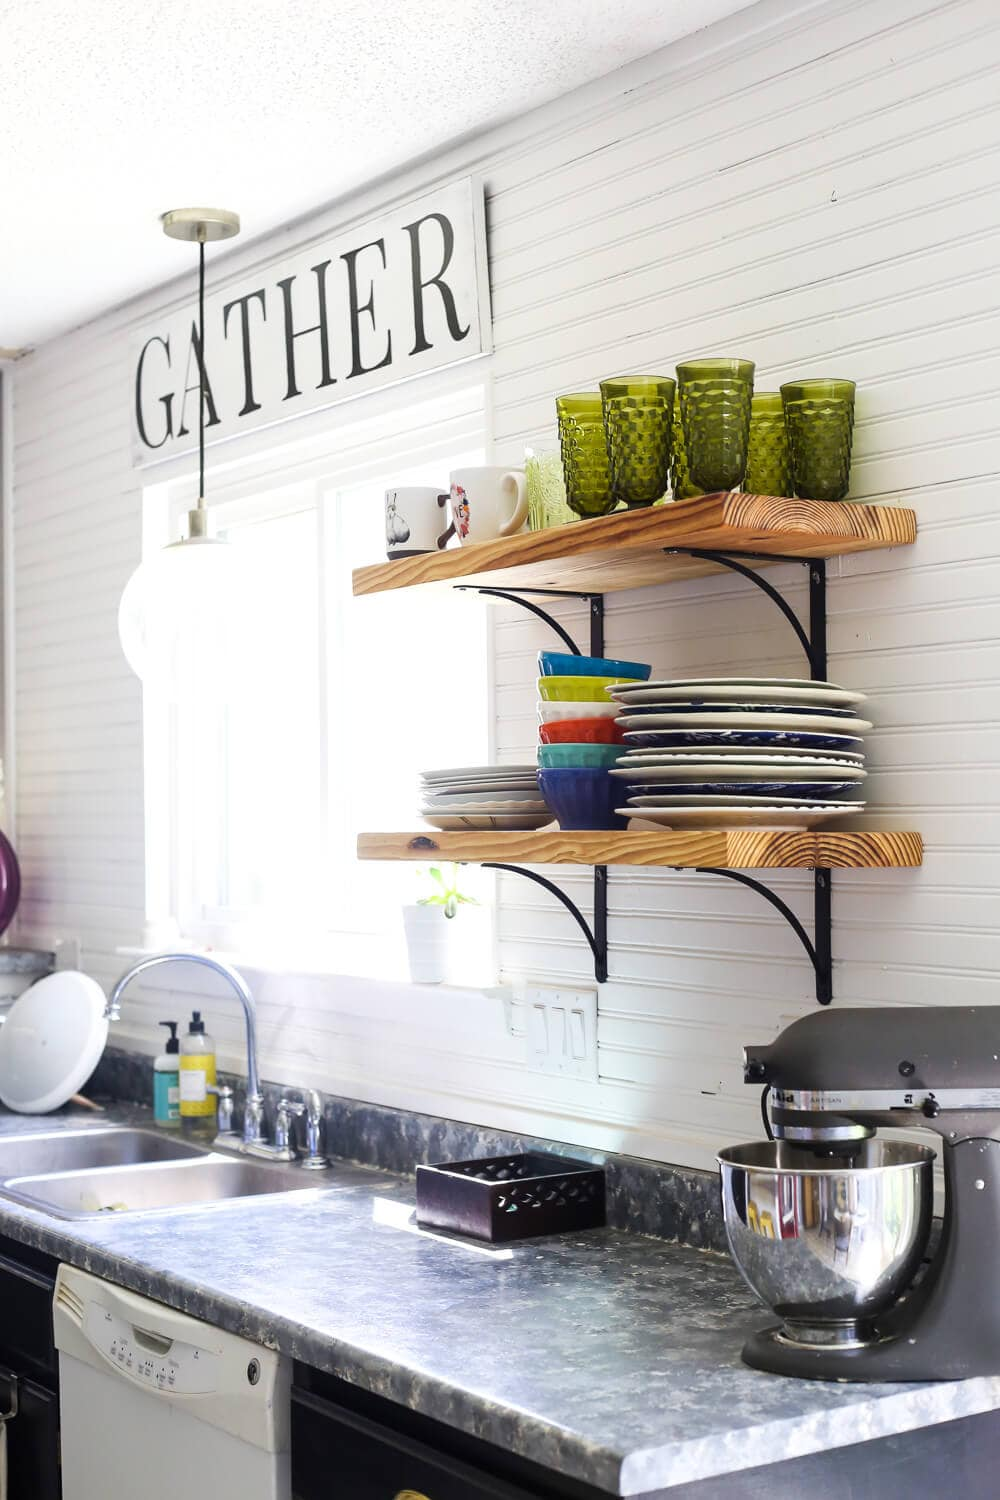 Ten design mistakes you may be making that are making your home feel way more cluttered - and how to address them!